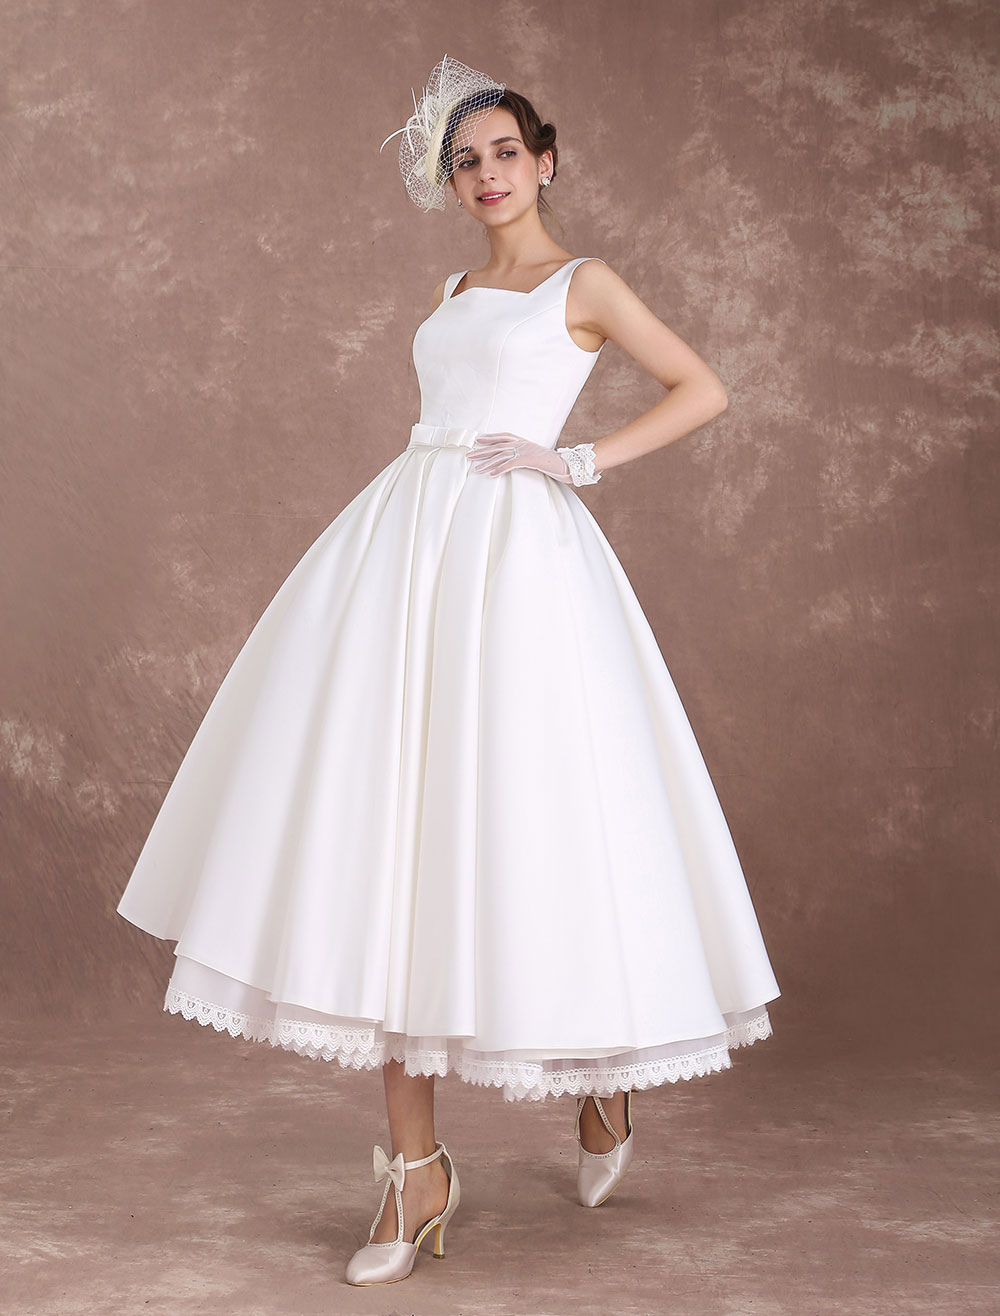 White Wedding Dresses Short Vintage Bridal Dress 1950 S Satin Straps Bow Sash Tea Length Rockabilly Wedding Reception Dress Milanoo Milanoo Com,Farm Wedding Barn Wedding Dresses